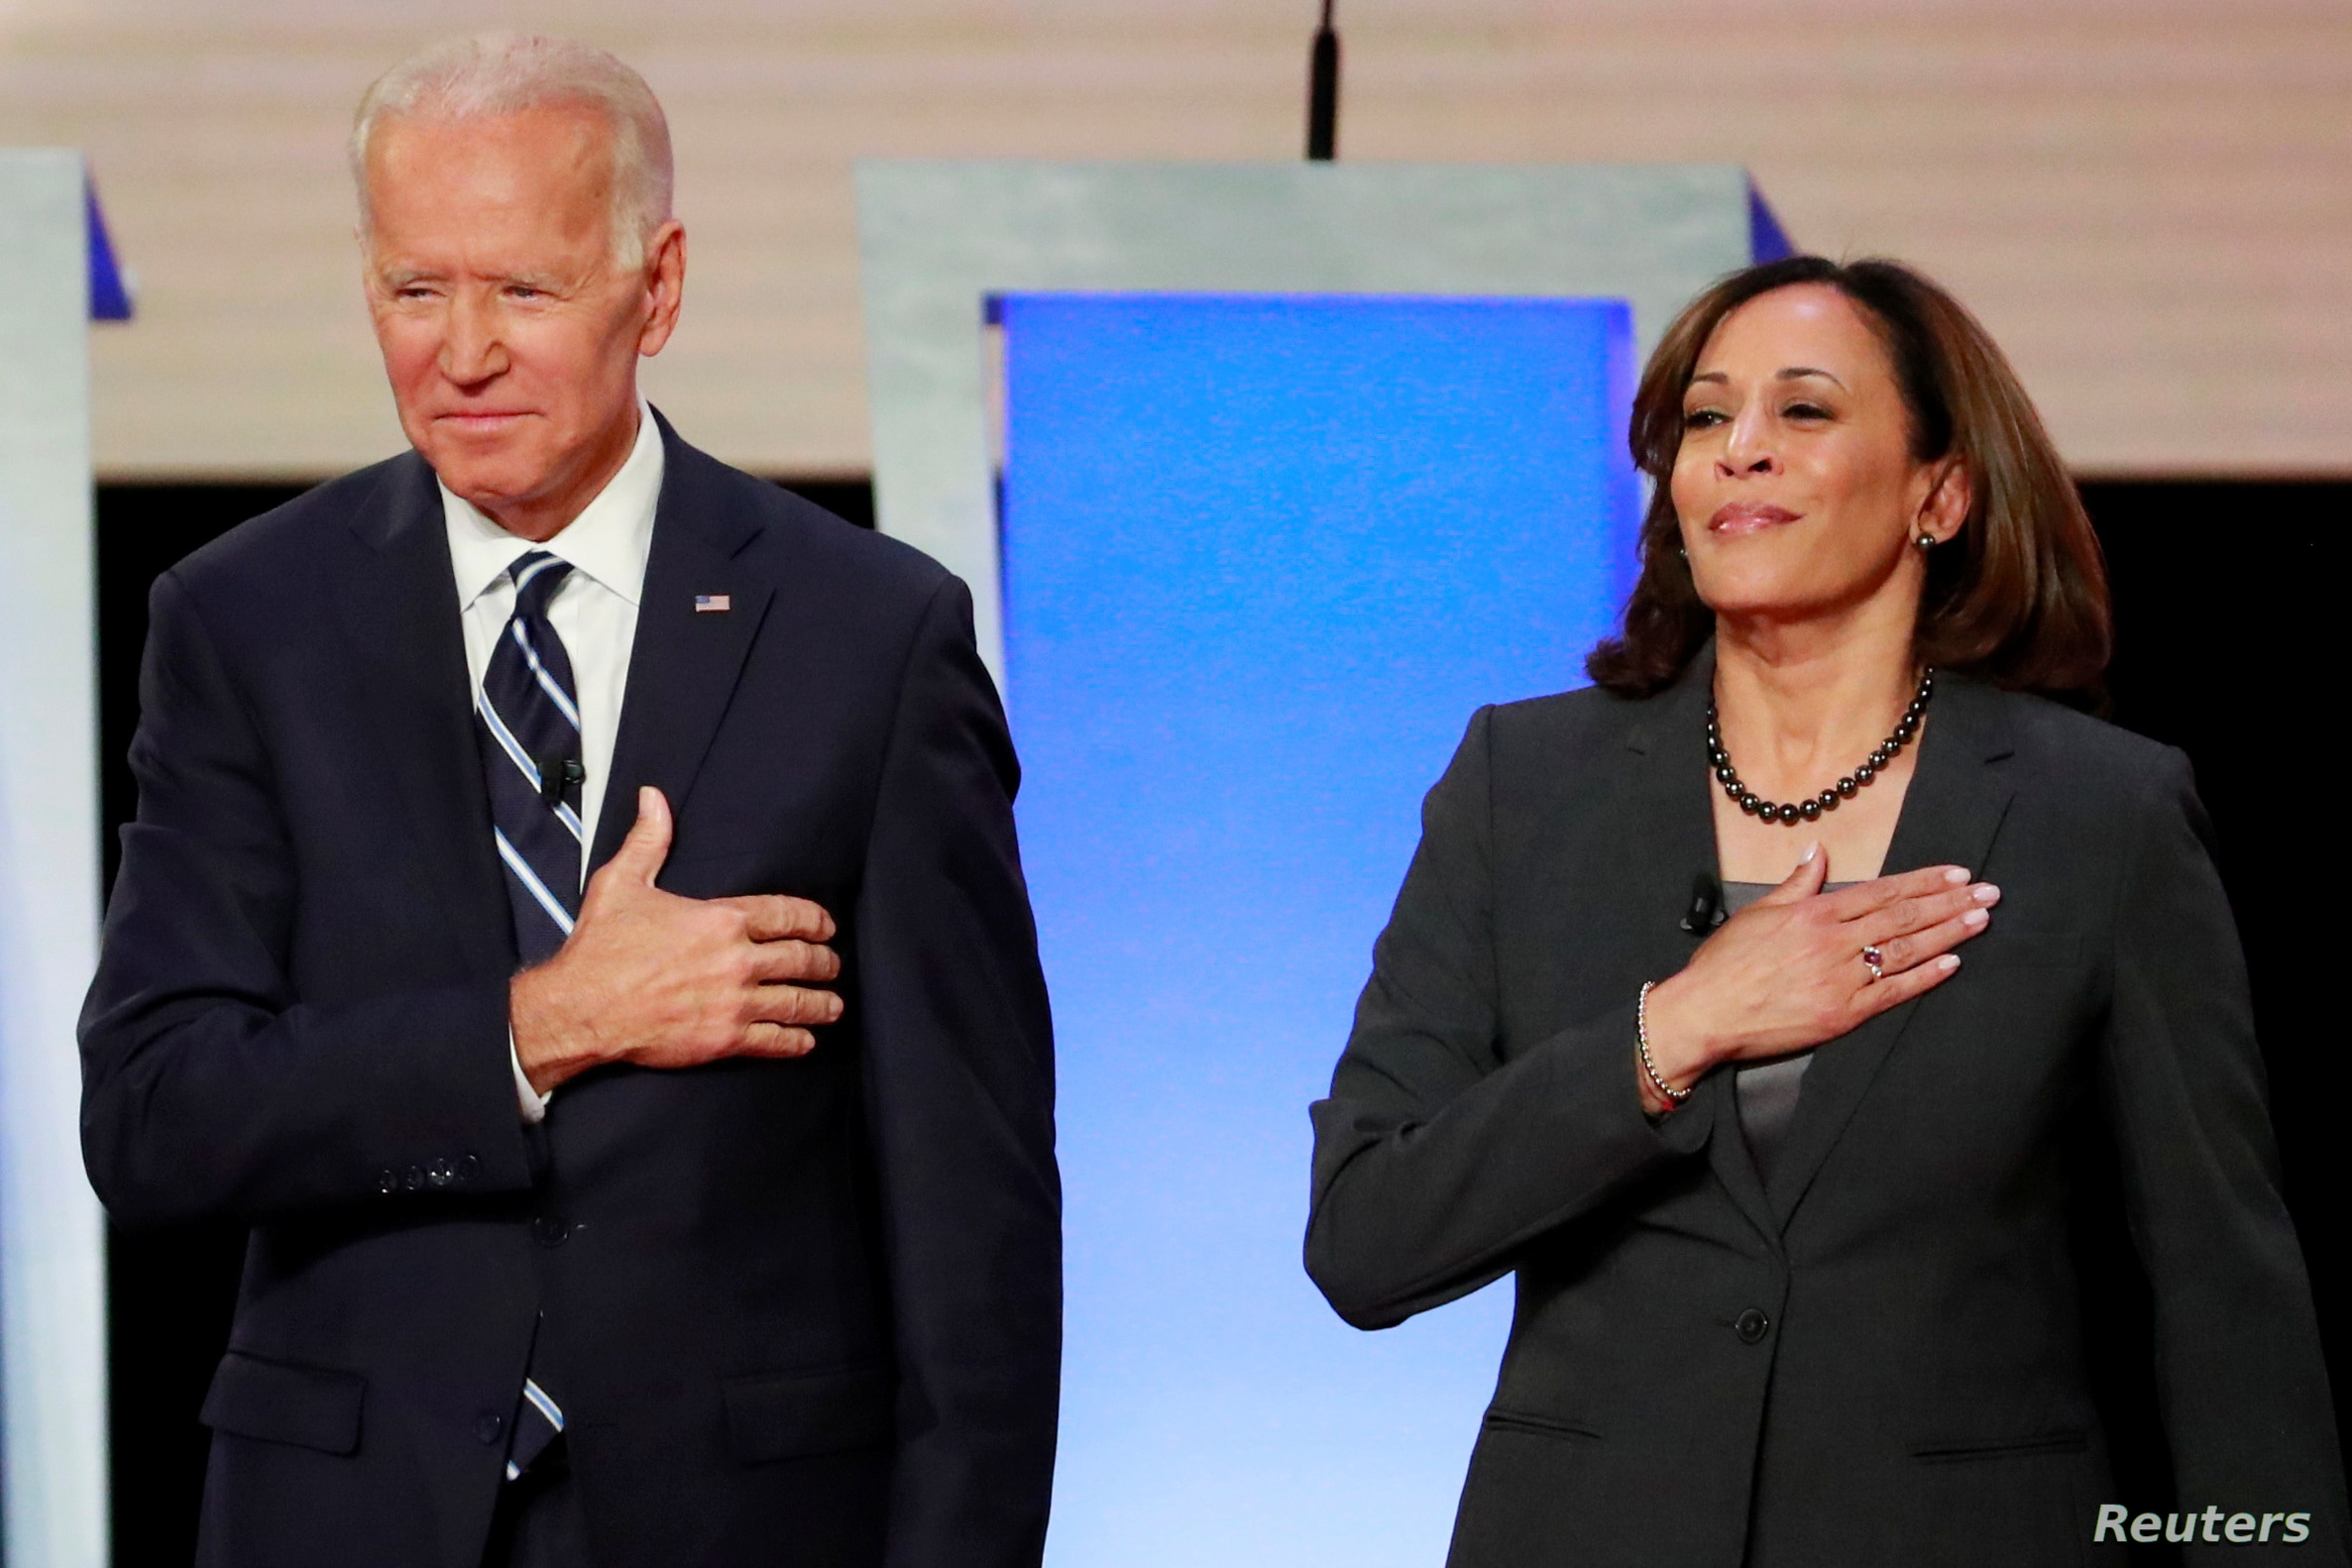 7 Quick Facts On Kamala Harris Biden S Vp Candidate Voice Of America English